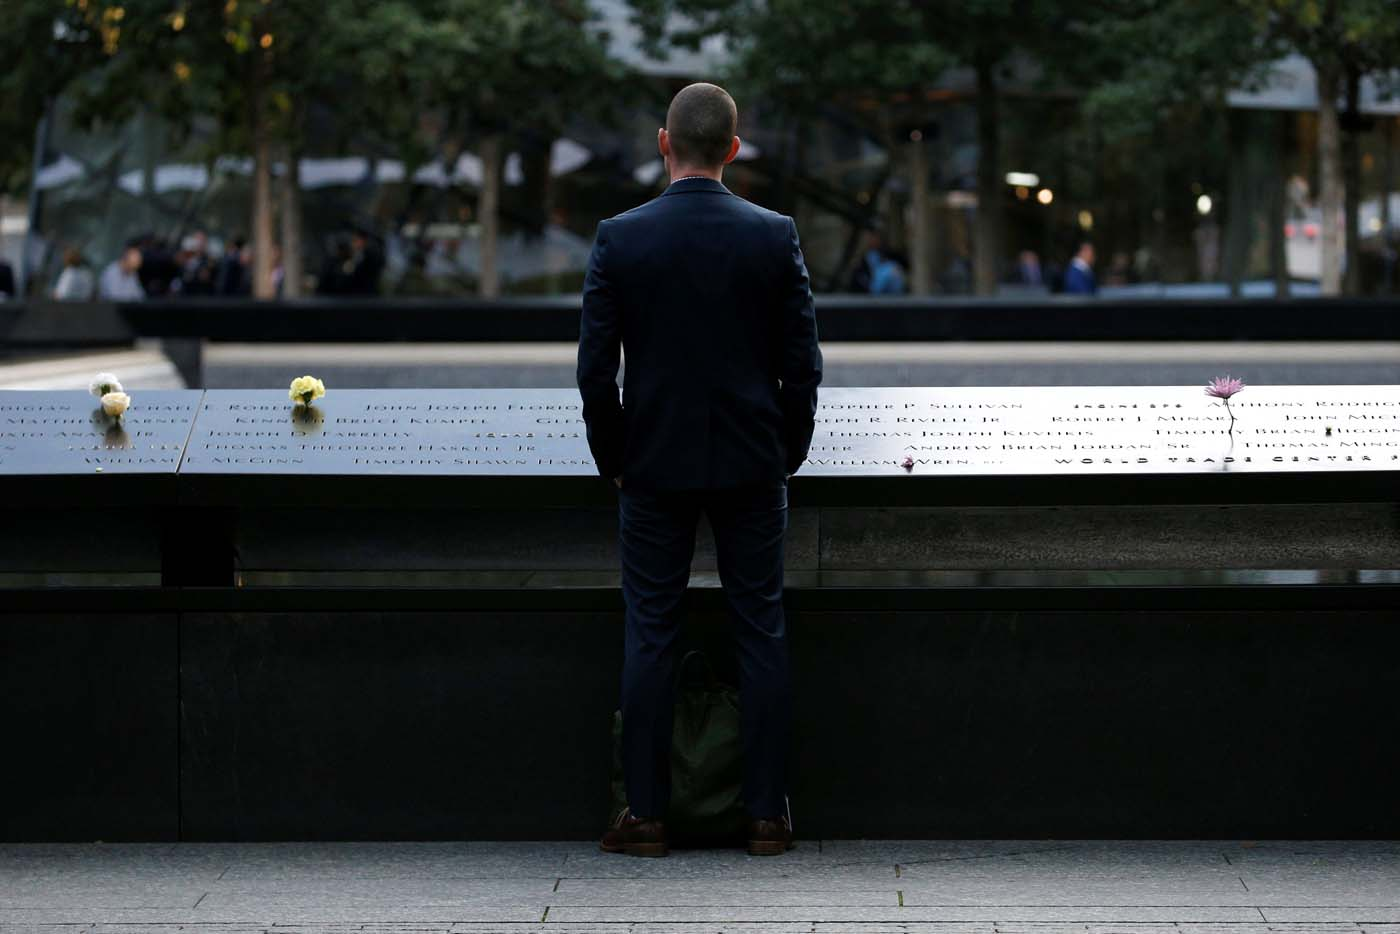 A man pauses at the edge of the South reflecting pool at the National September 11 Memorial and Museum during ceremonies marking the 16th anniversary of the September 11, 2001 attacks in New York, U.S, September 11, 2017. REUTERS/Brendan McDermid